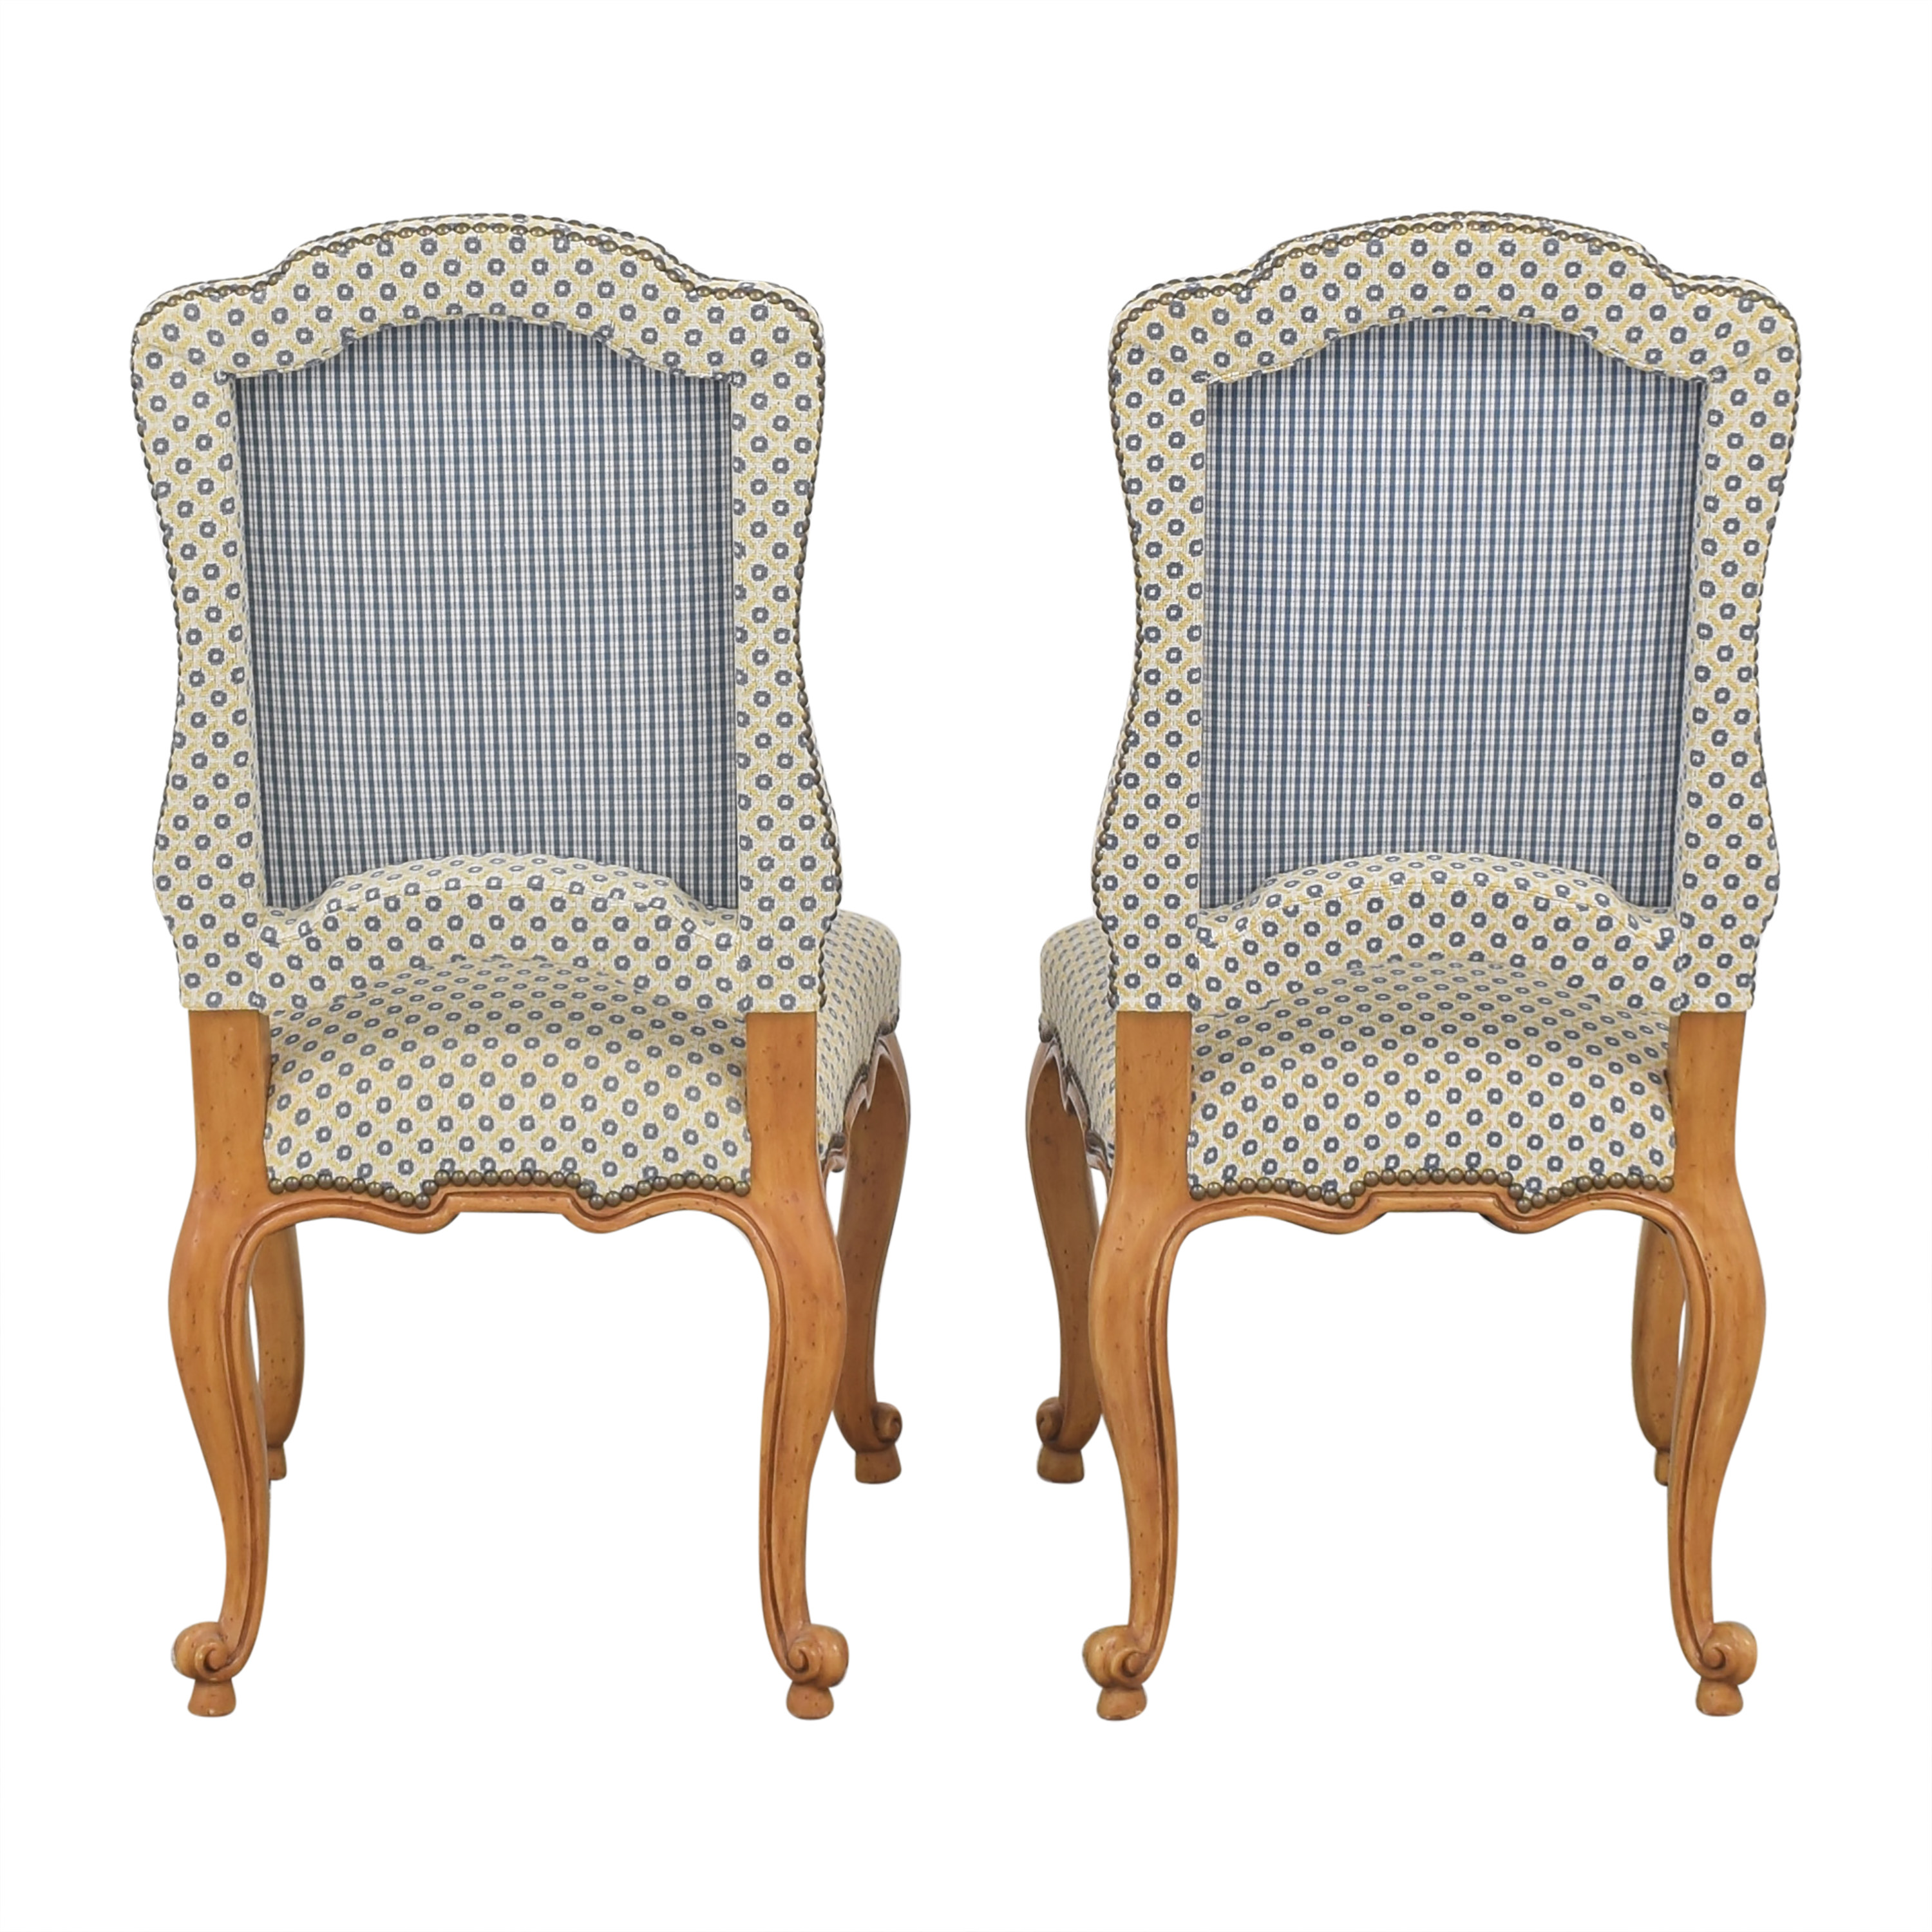 Minton-Spidell Minton-Spidell Regence Dining Side Chairs nj